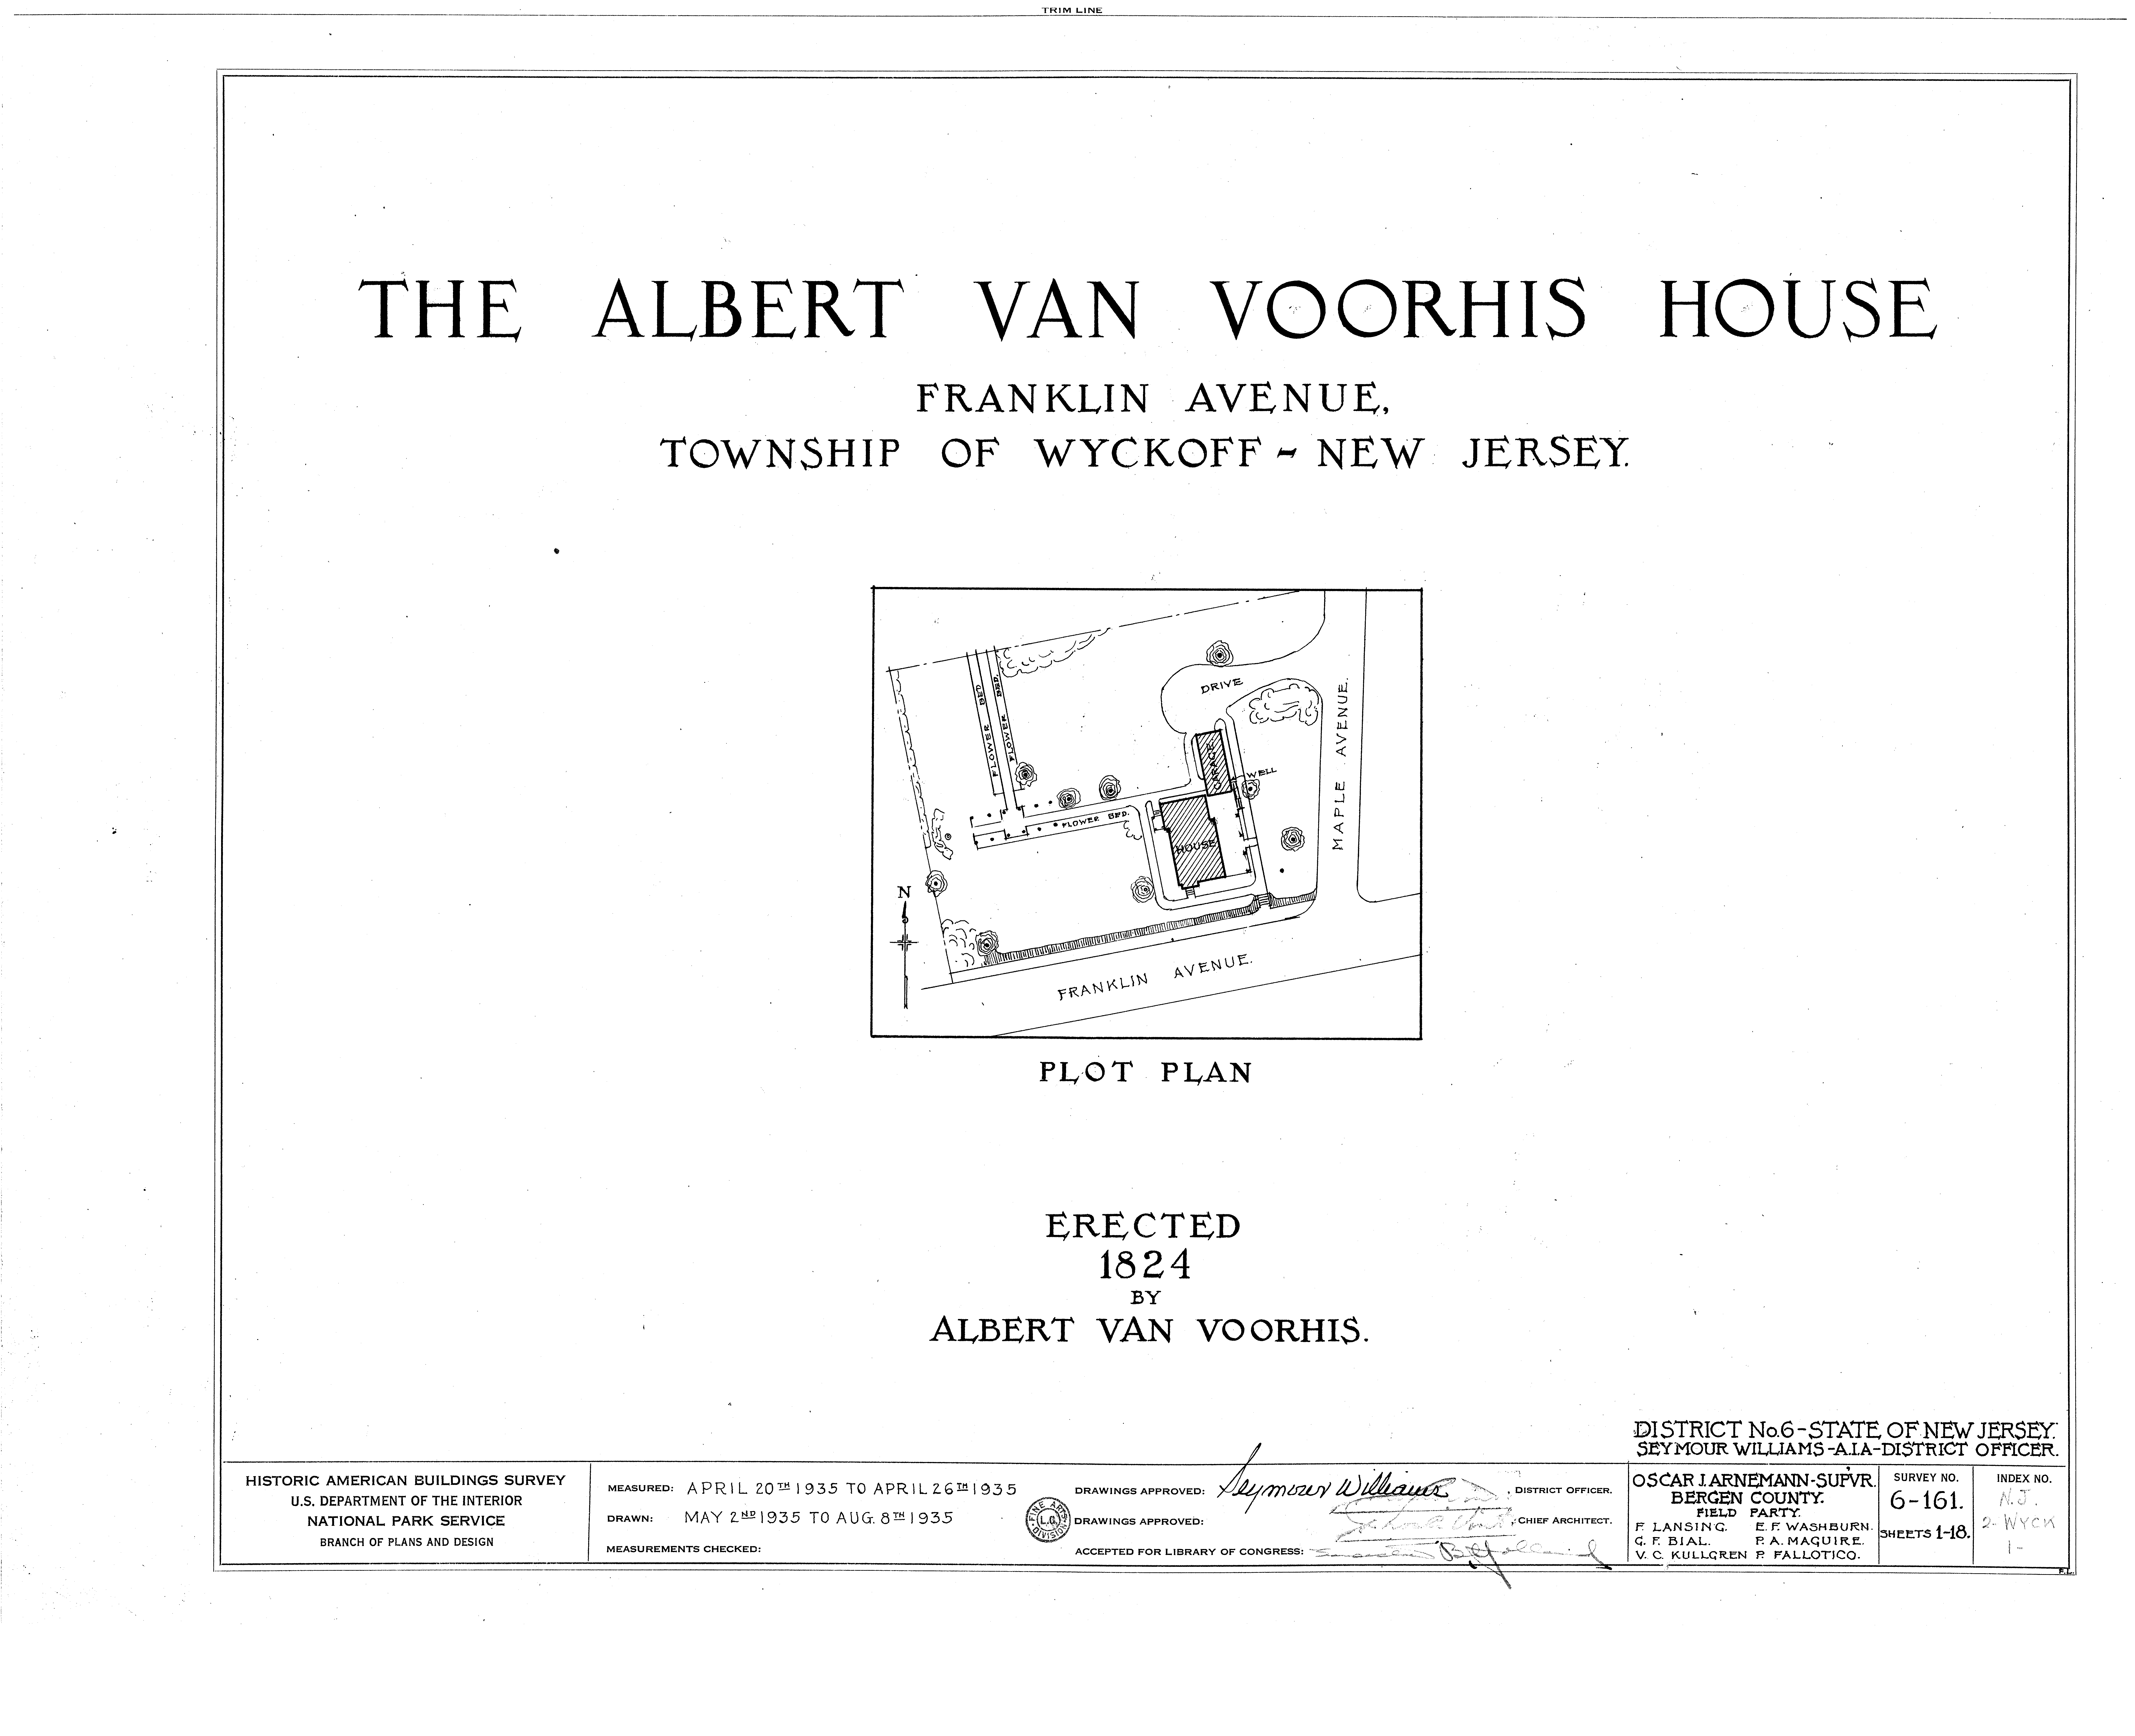 van voorhis dating Sources for historical photographs of the middle east: holdings at selected repositories  and the van voorhis collection of 19th century travel views.